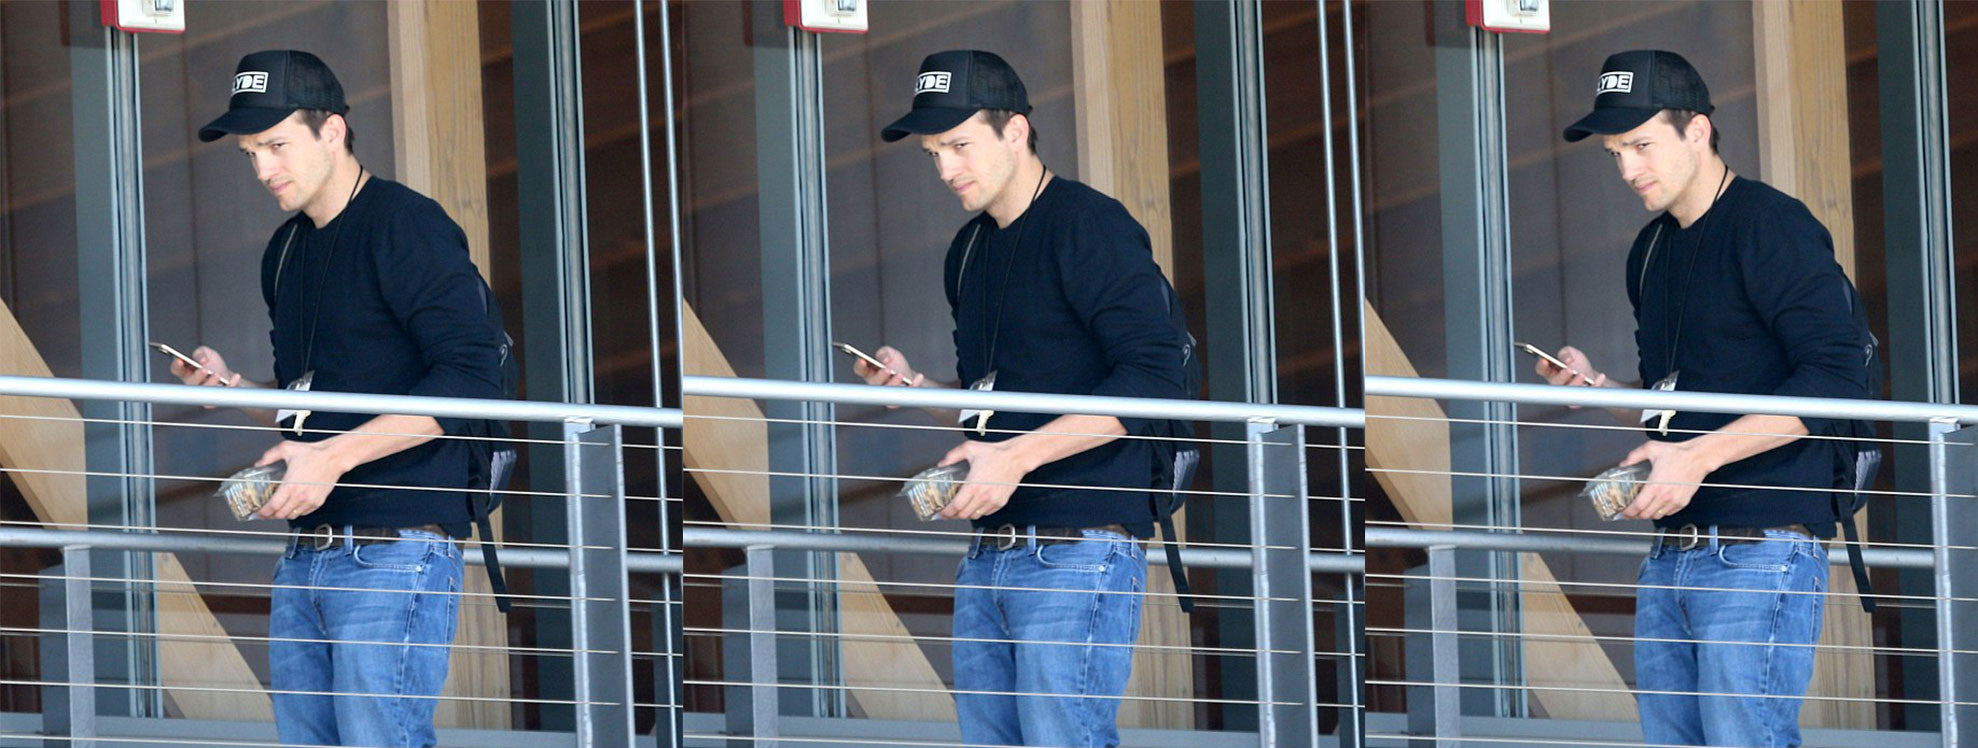 Ashton Kutcher Rocking A Slyde Handboards Trucker Hat